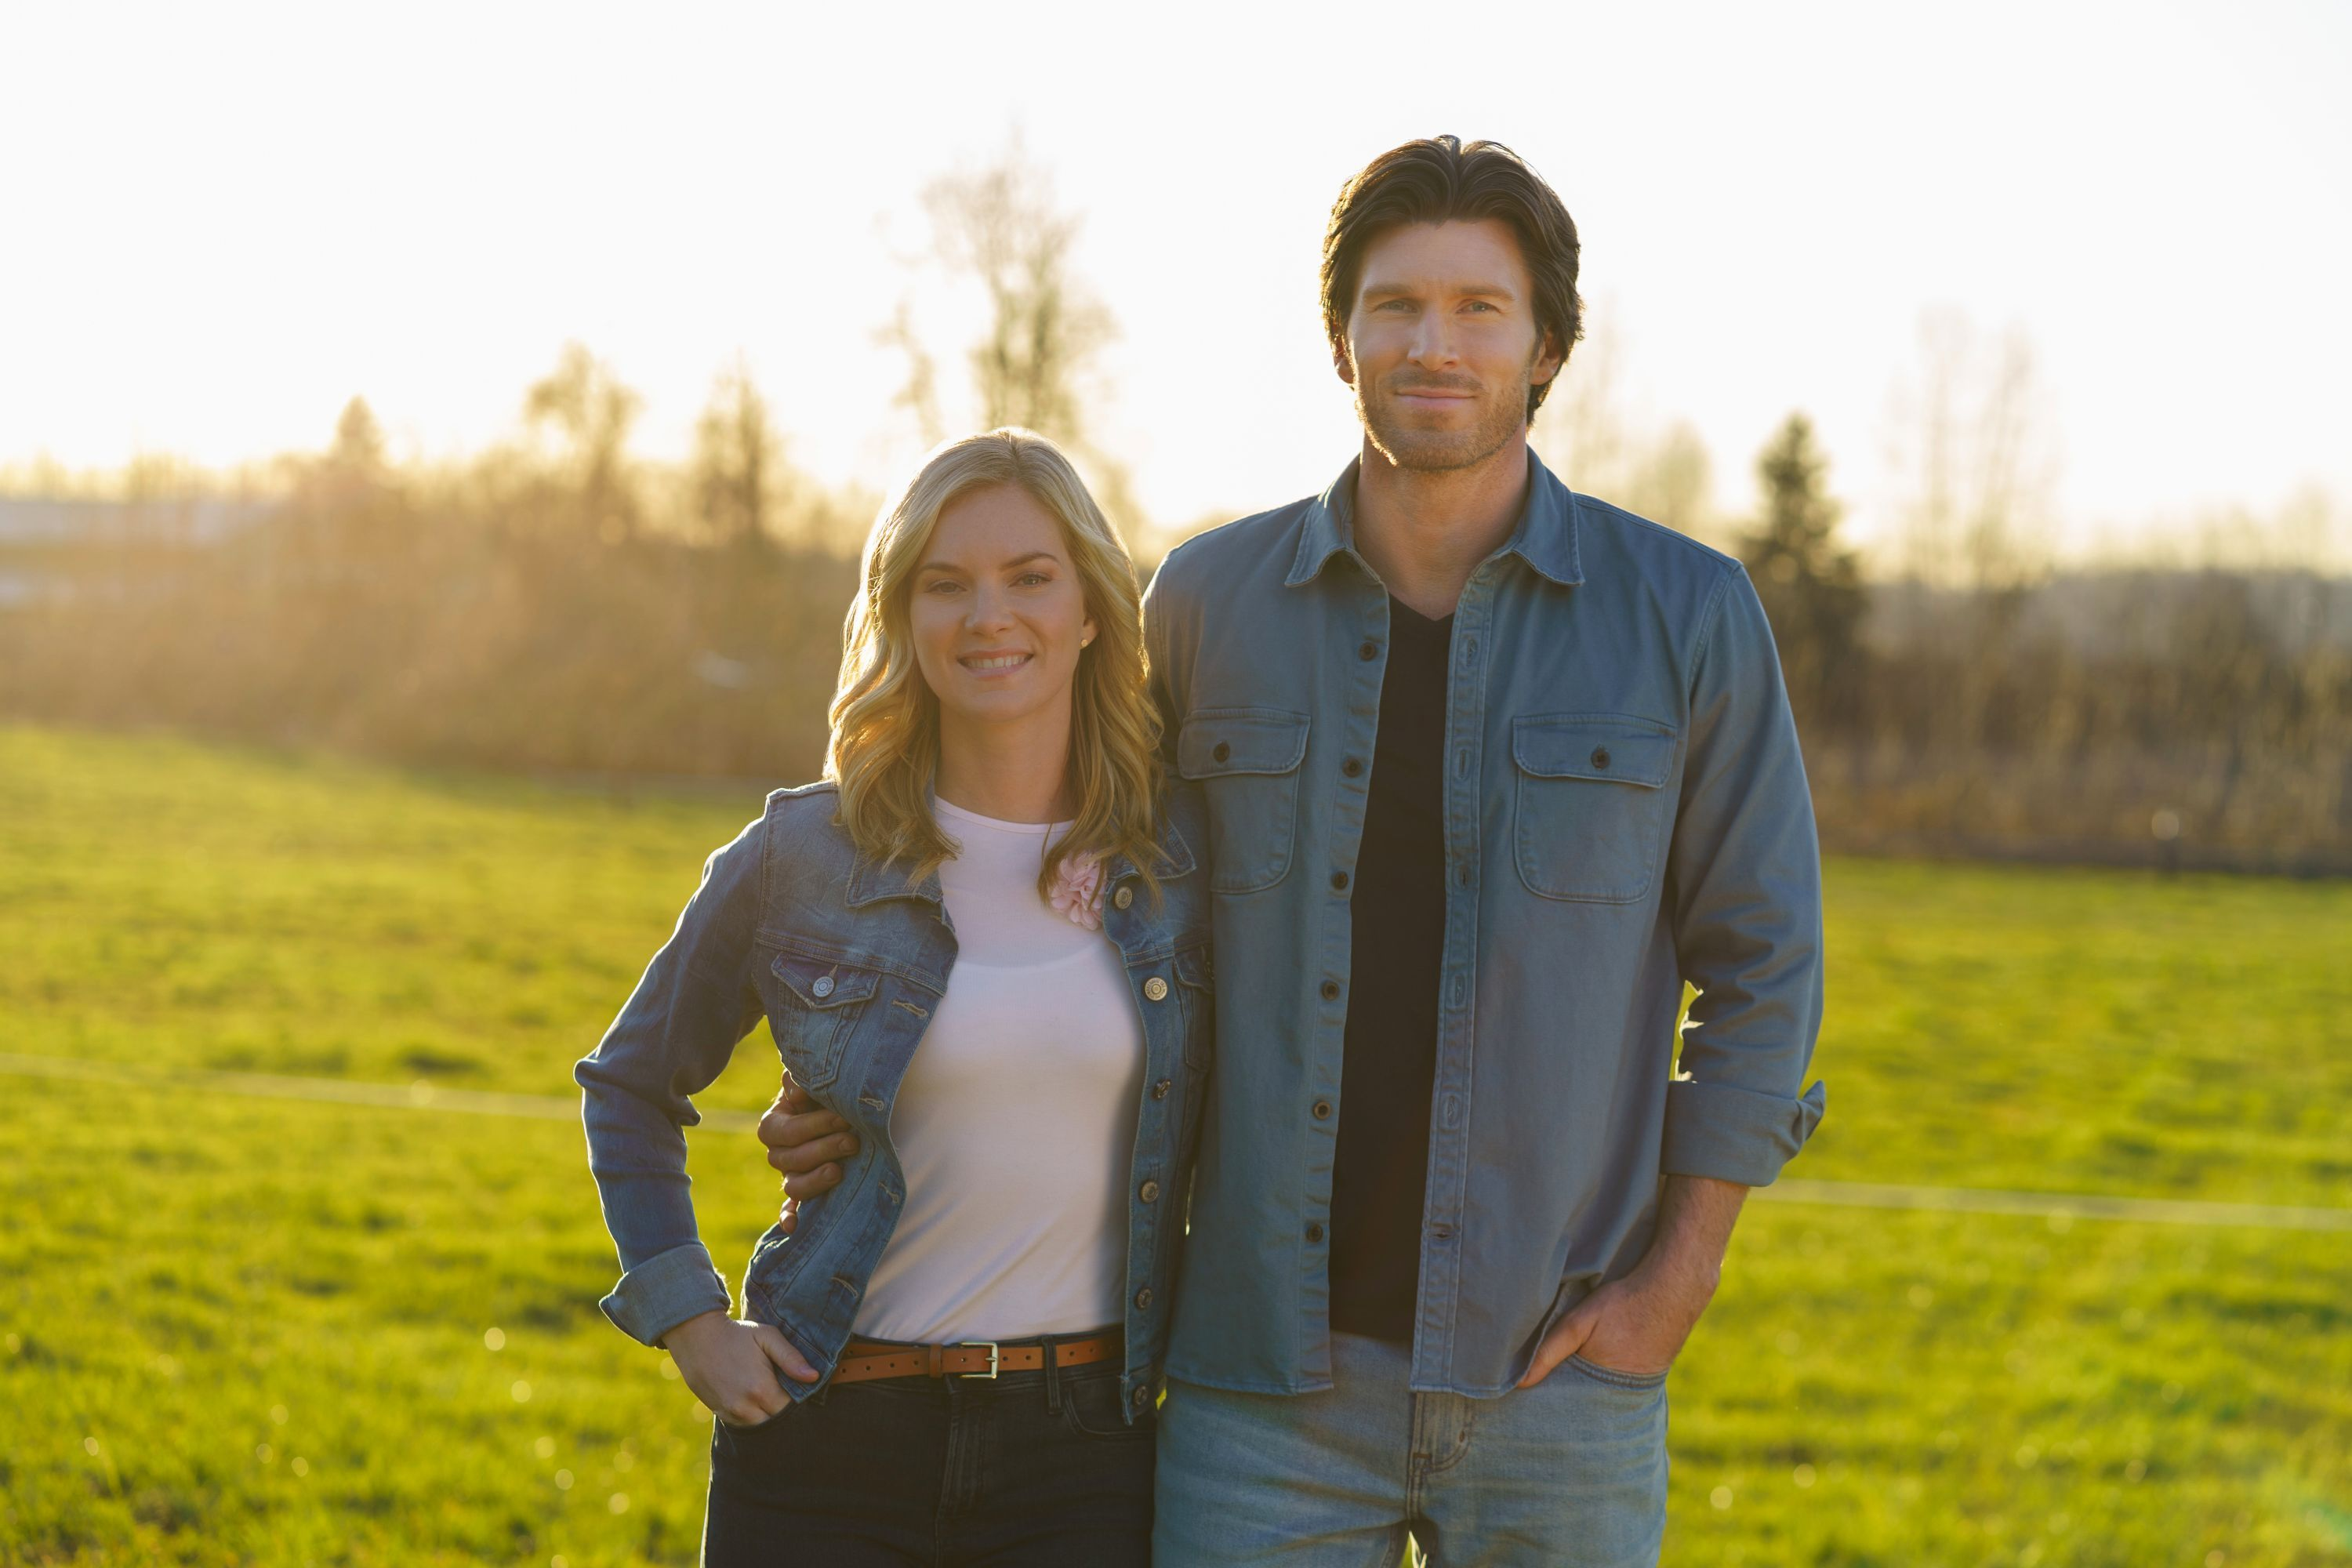 Cindy Busby Talks Celebrity Crushes, Her Favorite Movies and Why She Loves Hallmark — Cindy Busby Interview